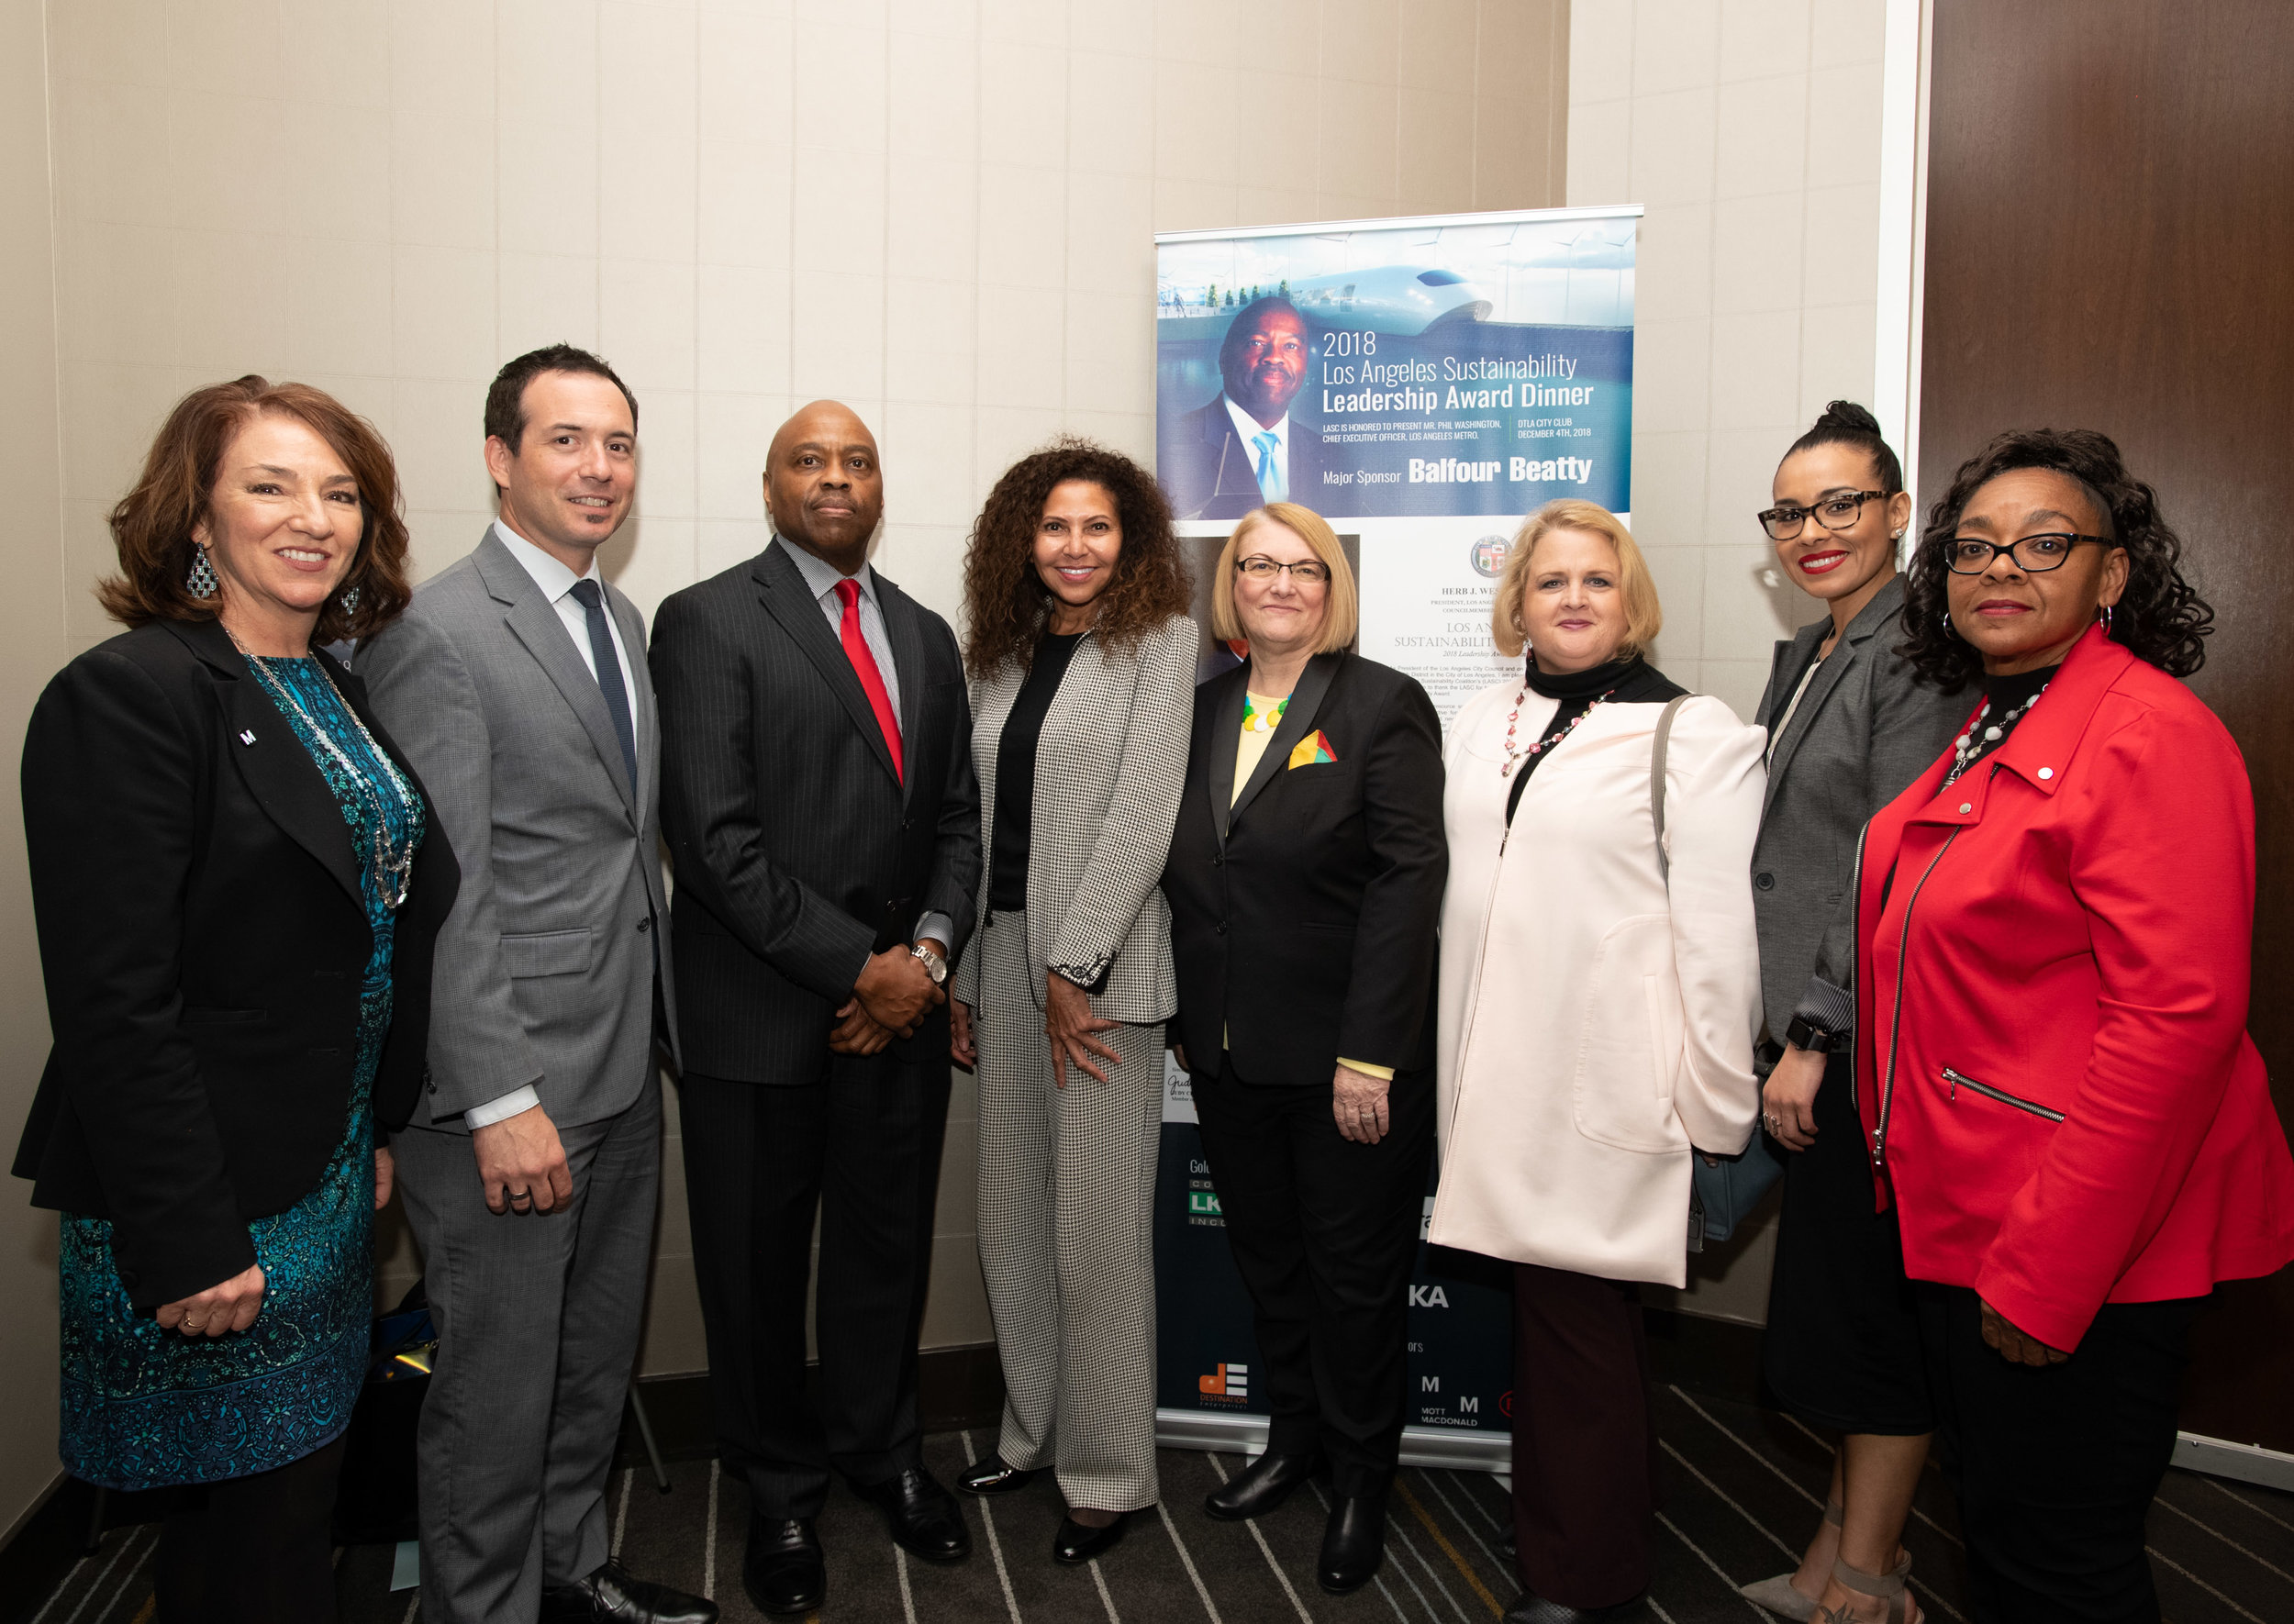 Pic 4 L-R Pauletta Tonilas (Metro Chief Communication Officer), Dave Perry (Transportation Deputy, Supervisor Kathryn Barber),Phil Washington (Metro Chief Executive Officer, 2018 Sustainability Leadership Award) Joni Goheen (Metro Deputy Executive Officer Public Relations) and other Metro personnel